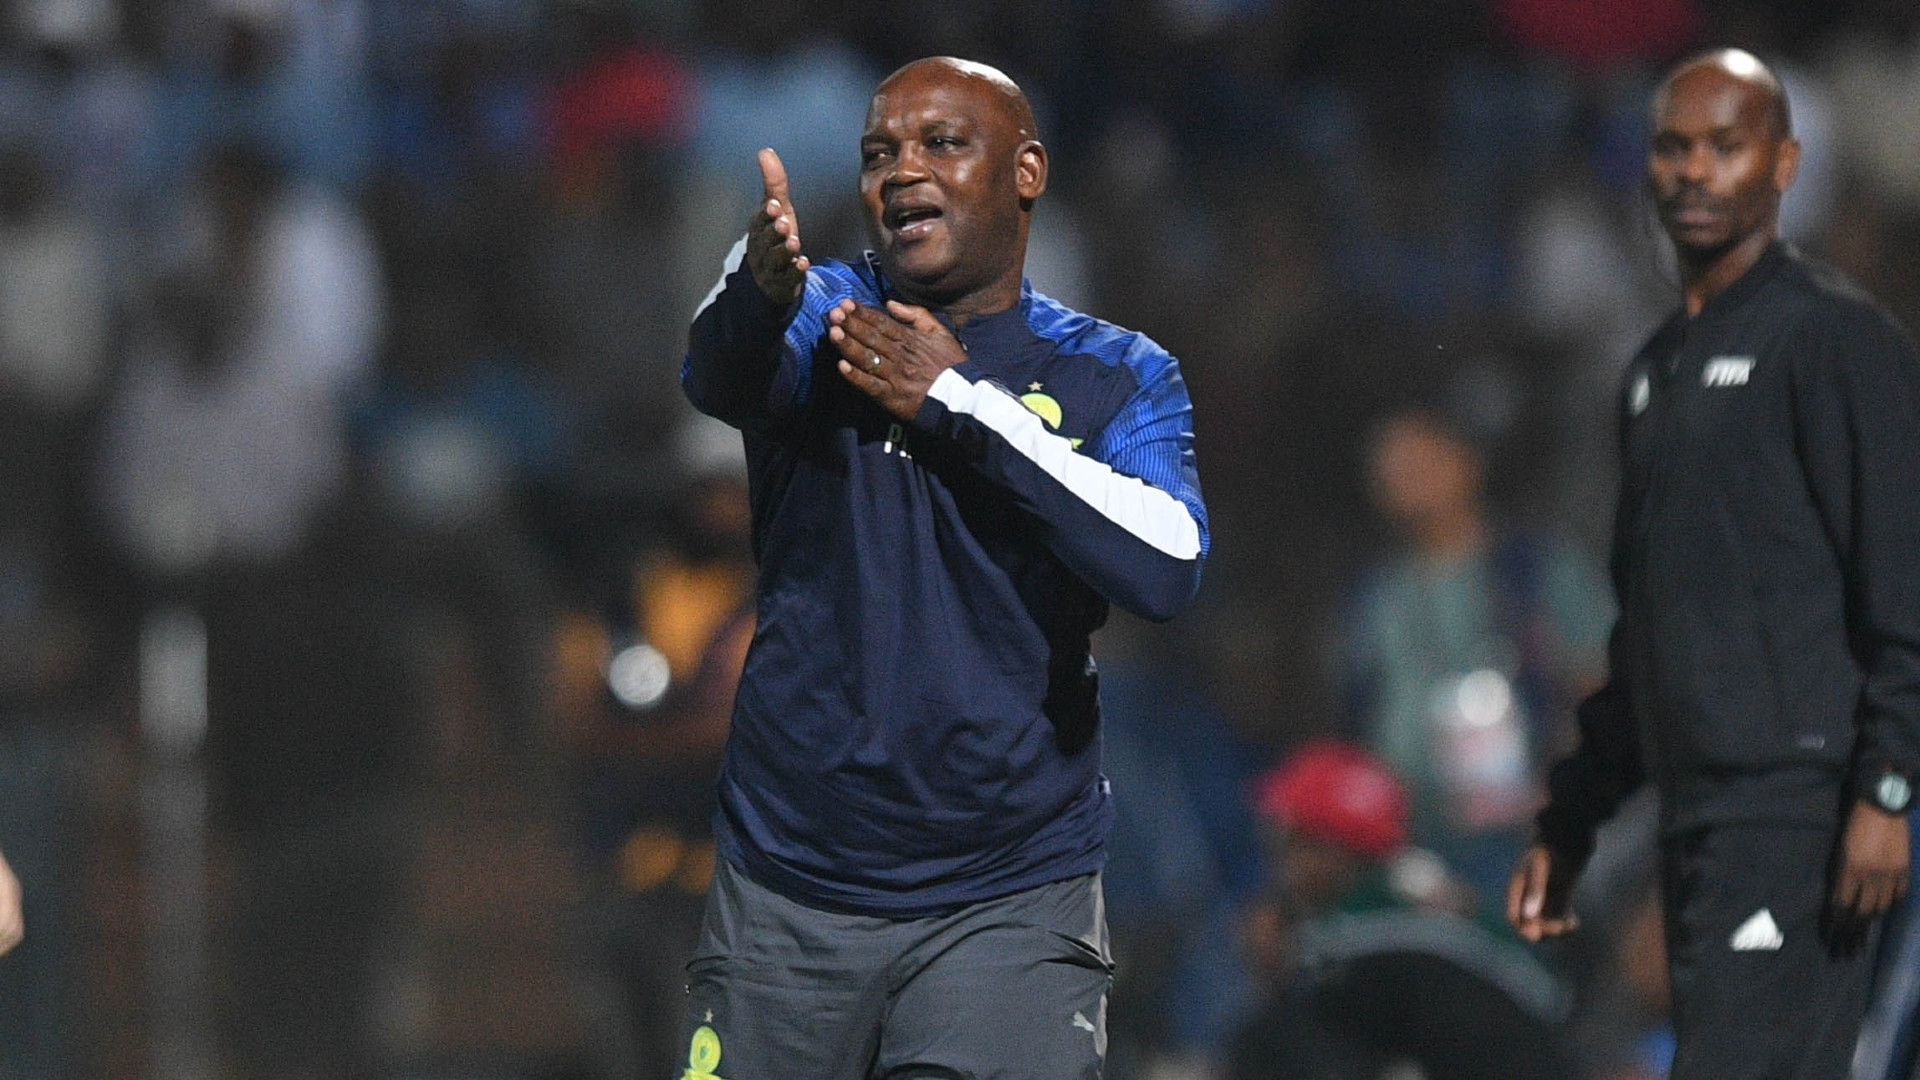 Pitso Mosimane declares Saturday 'cup final day' for Kaizer Chiefs and  Mamelodi Sundowns | Goal.com